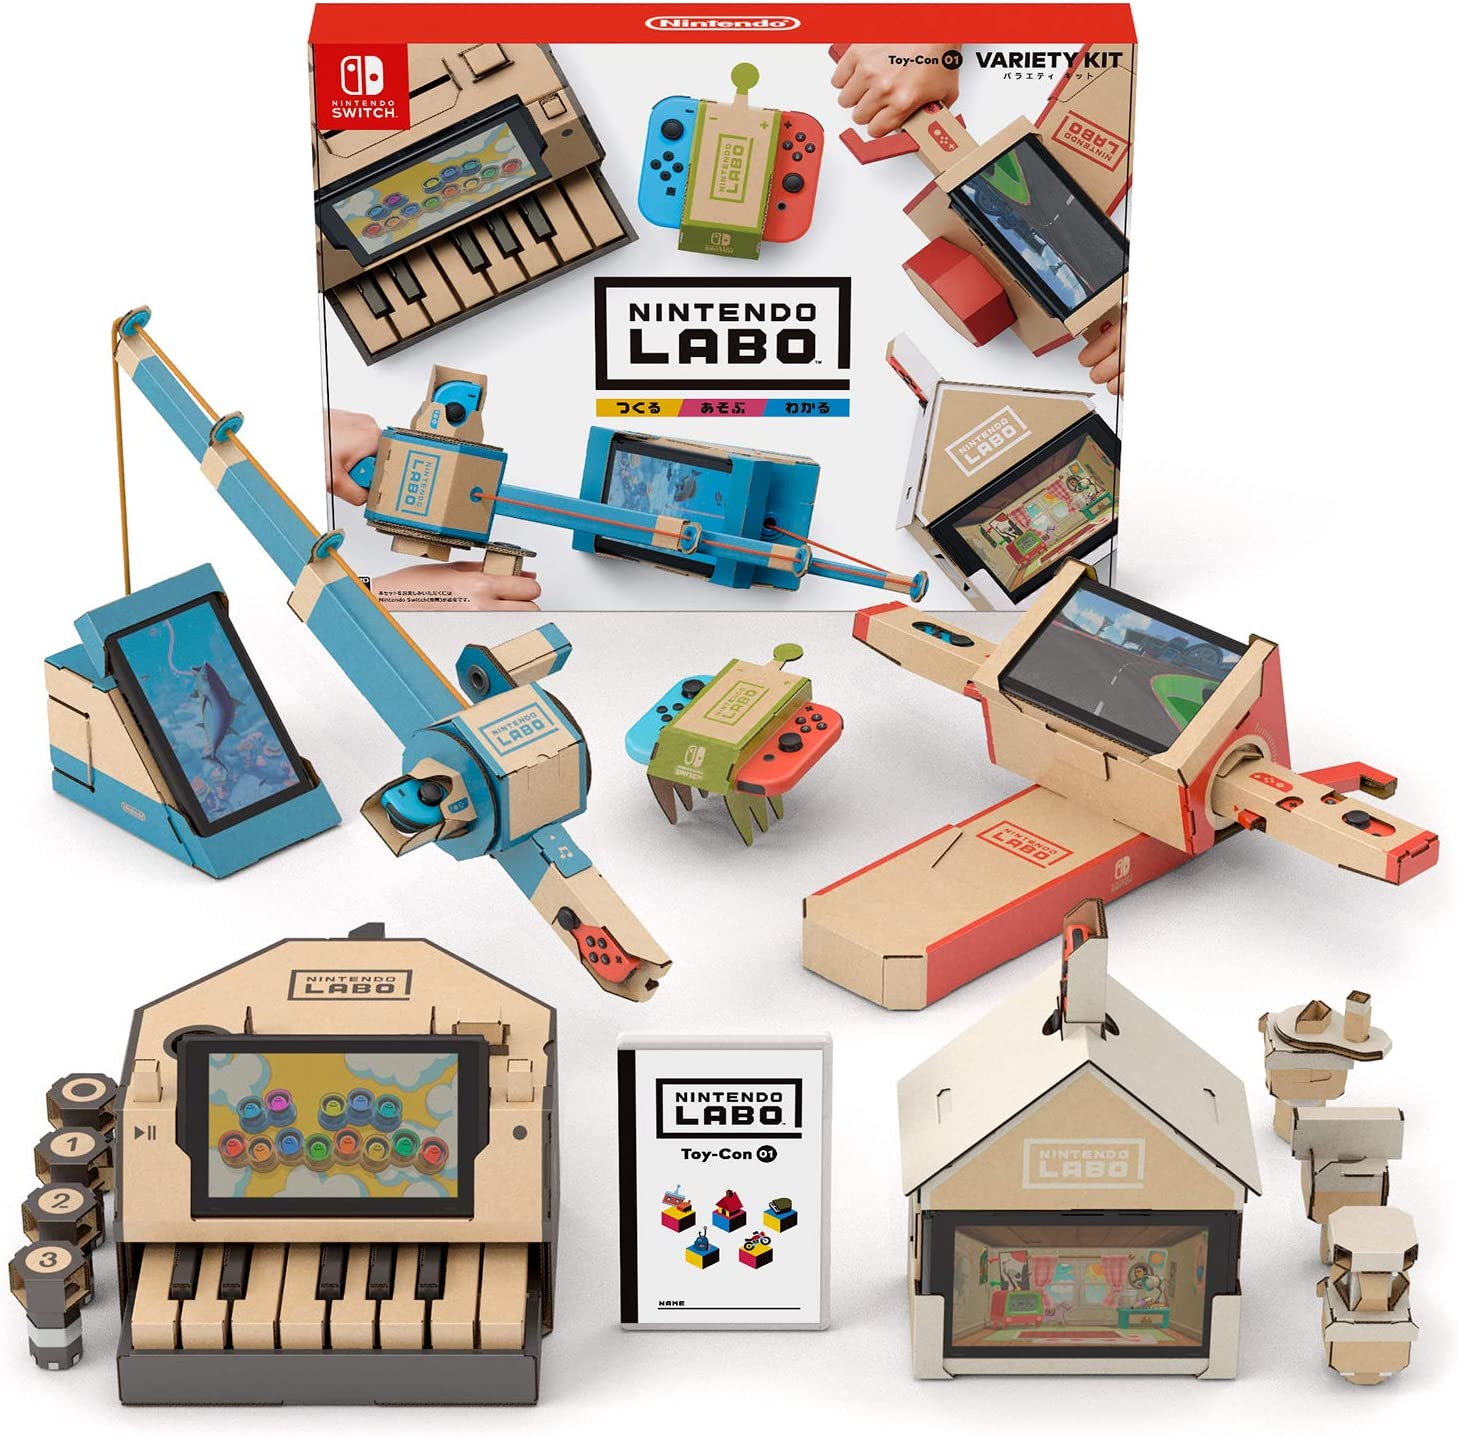 Nintendo 任天堂 Switch Nintendo Labo Variety Kit 五合一套件